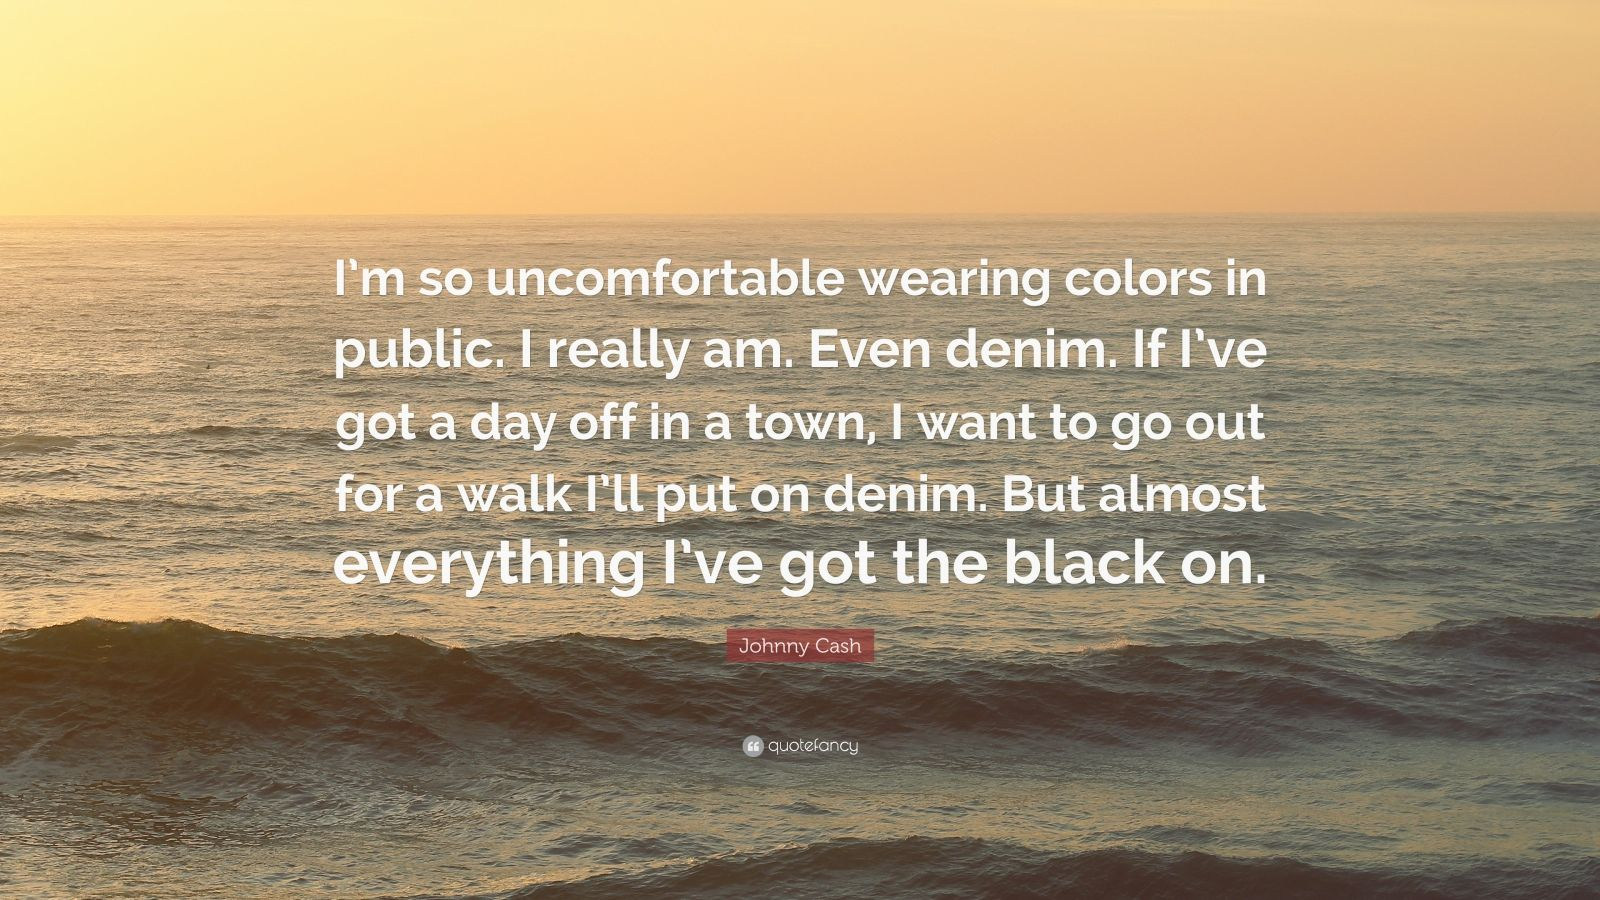 """Johnny Cash Quote: """"I'm so uncomfortable wearing colors in public. I really am. Even denim. If I've got a day off in a town, I want to go out for a walk I'll put on denim. But almost everything I've got the black on."""""""